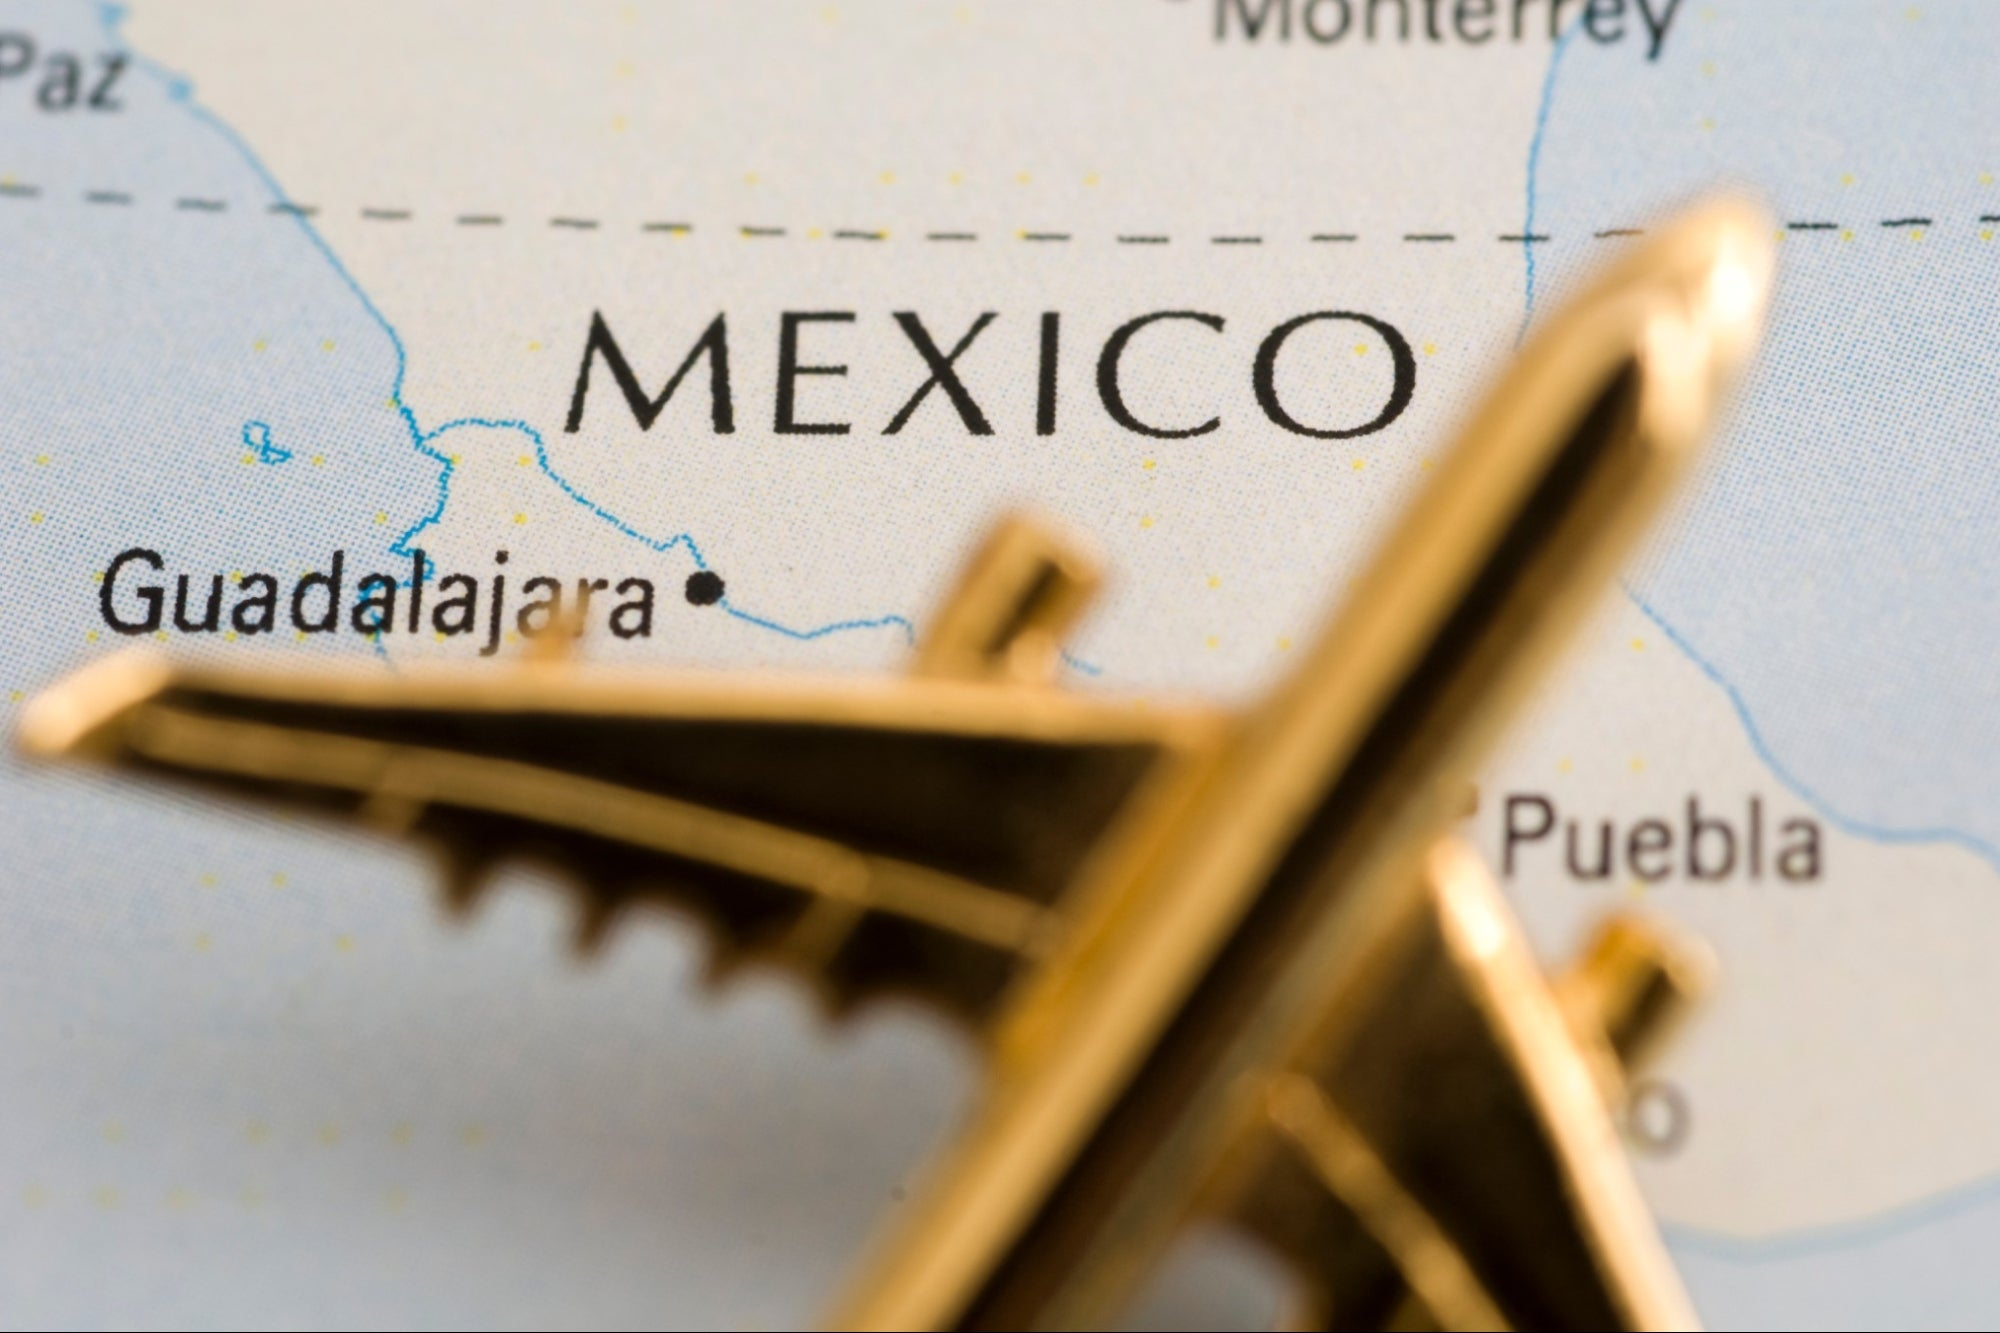 How to establish a transnational startup in Mexico?